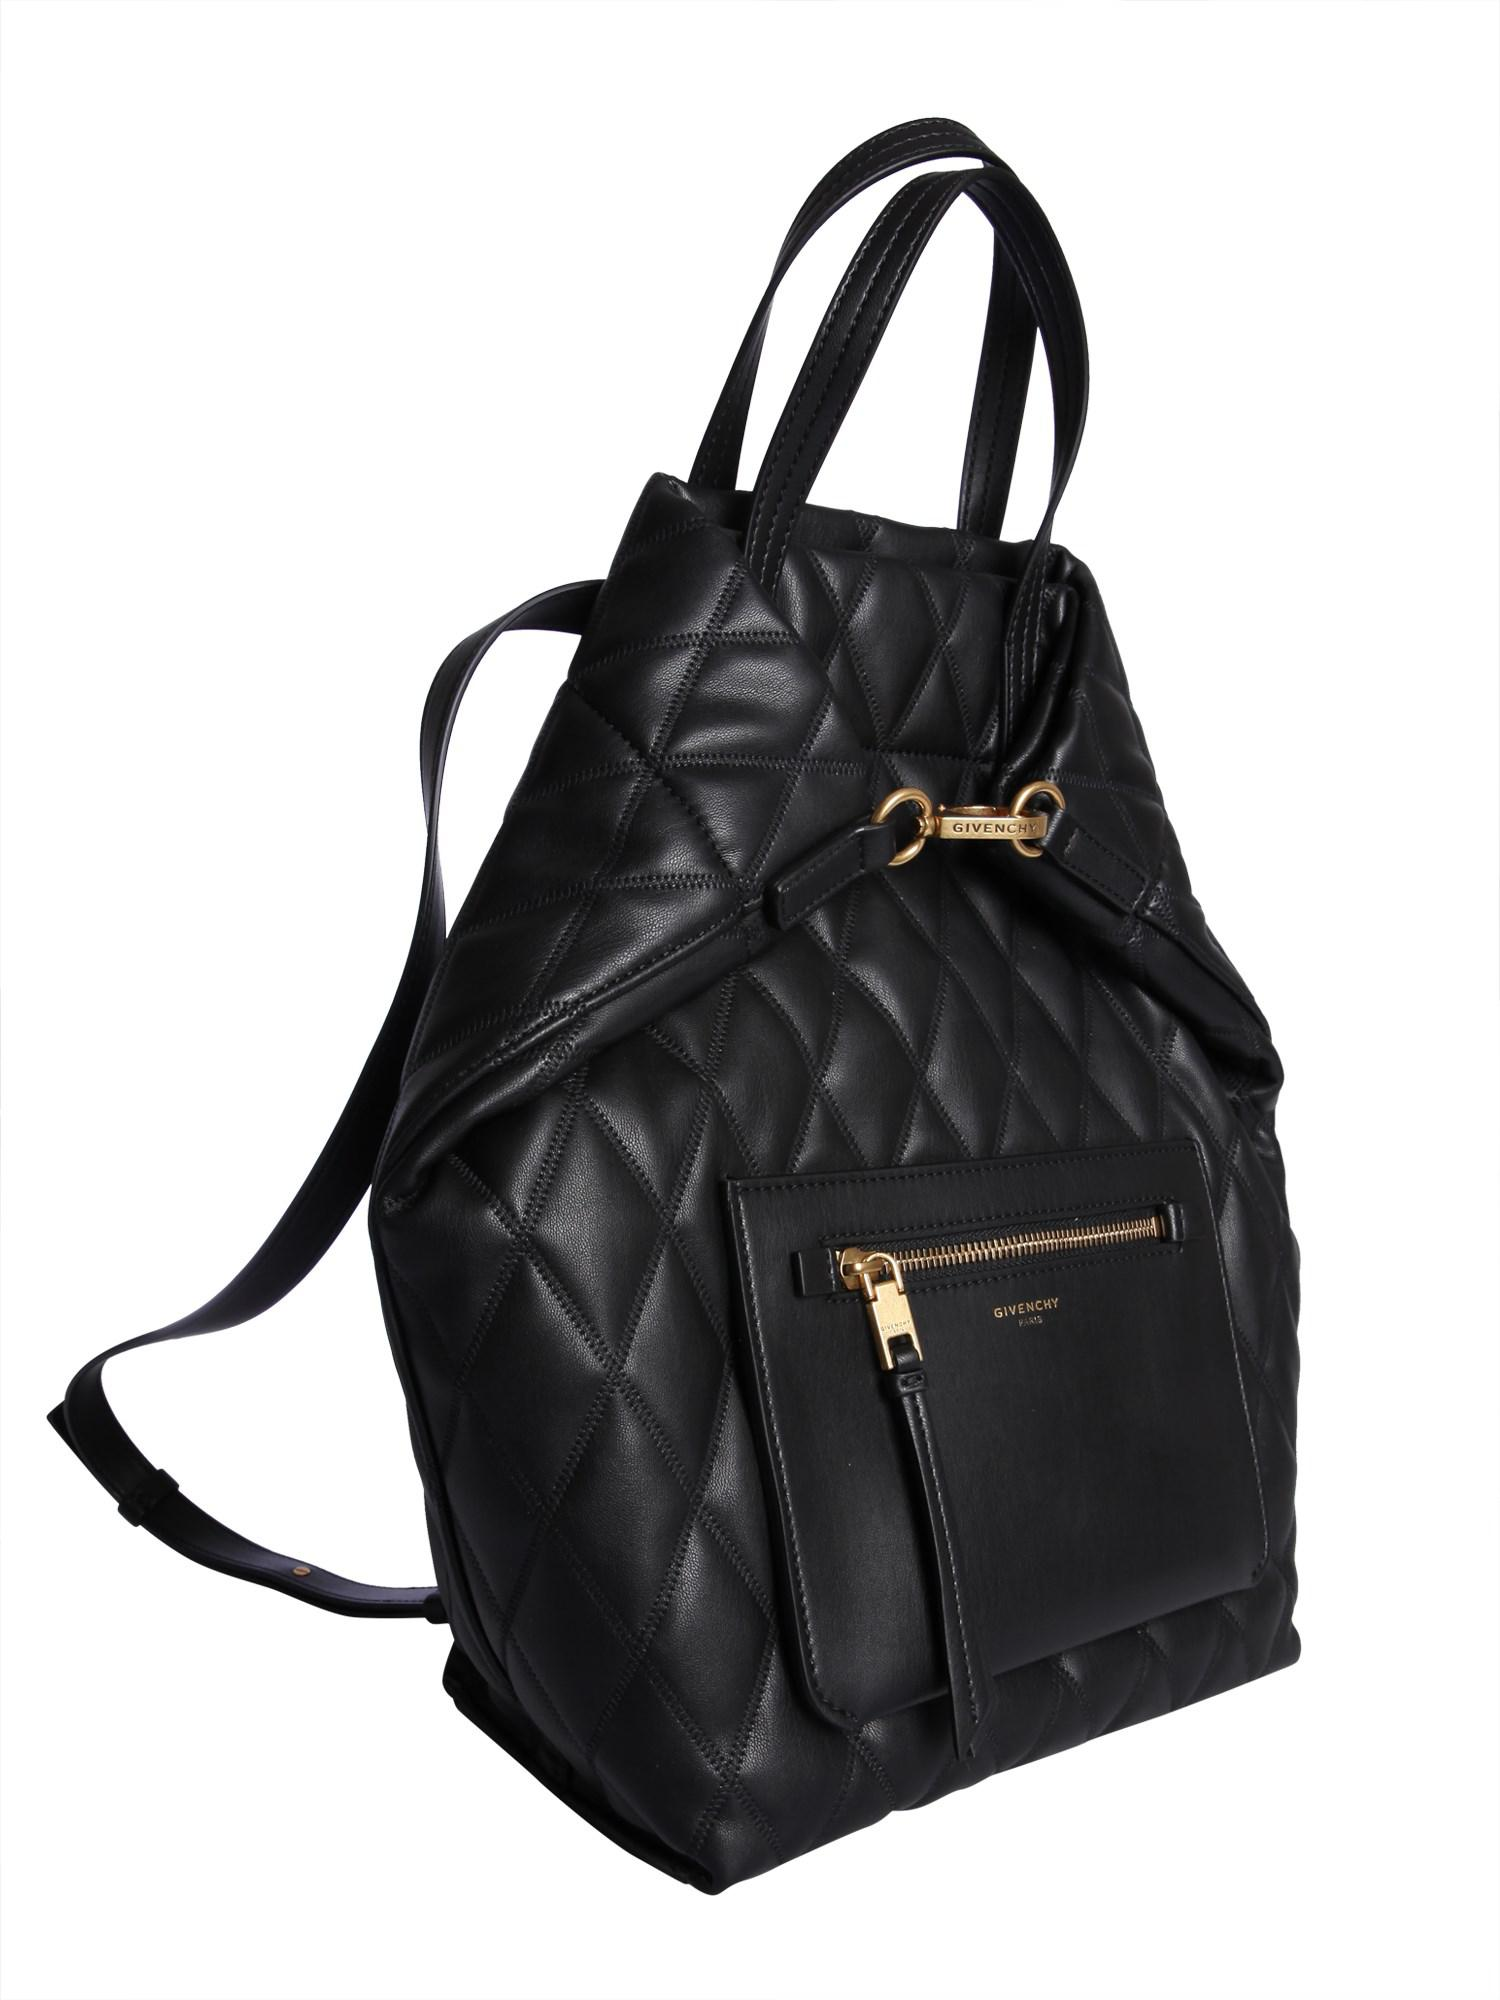 1911fa4cf9d2 Givenchy - Black Quilted Tote Backpack Bag - Lyst. View fullscreen